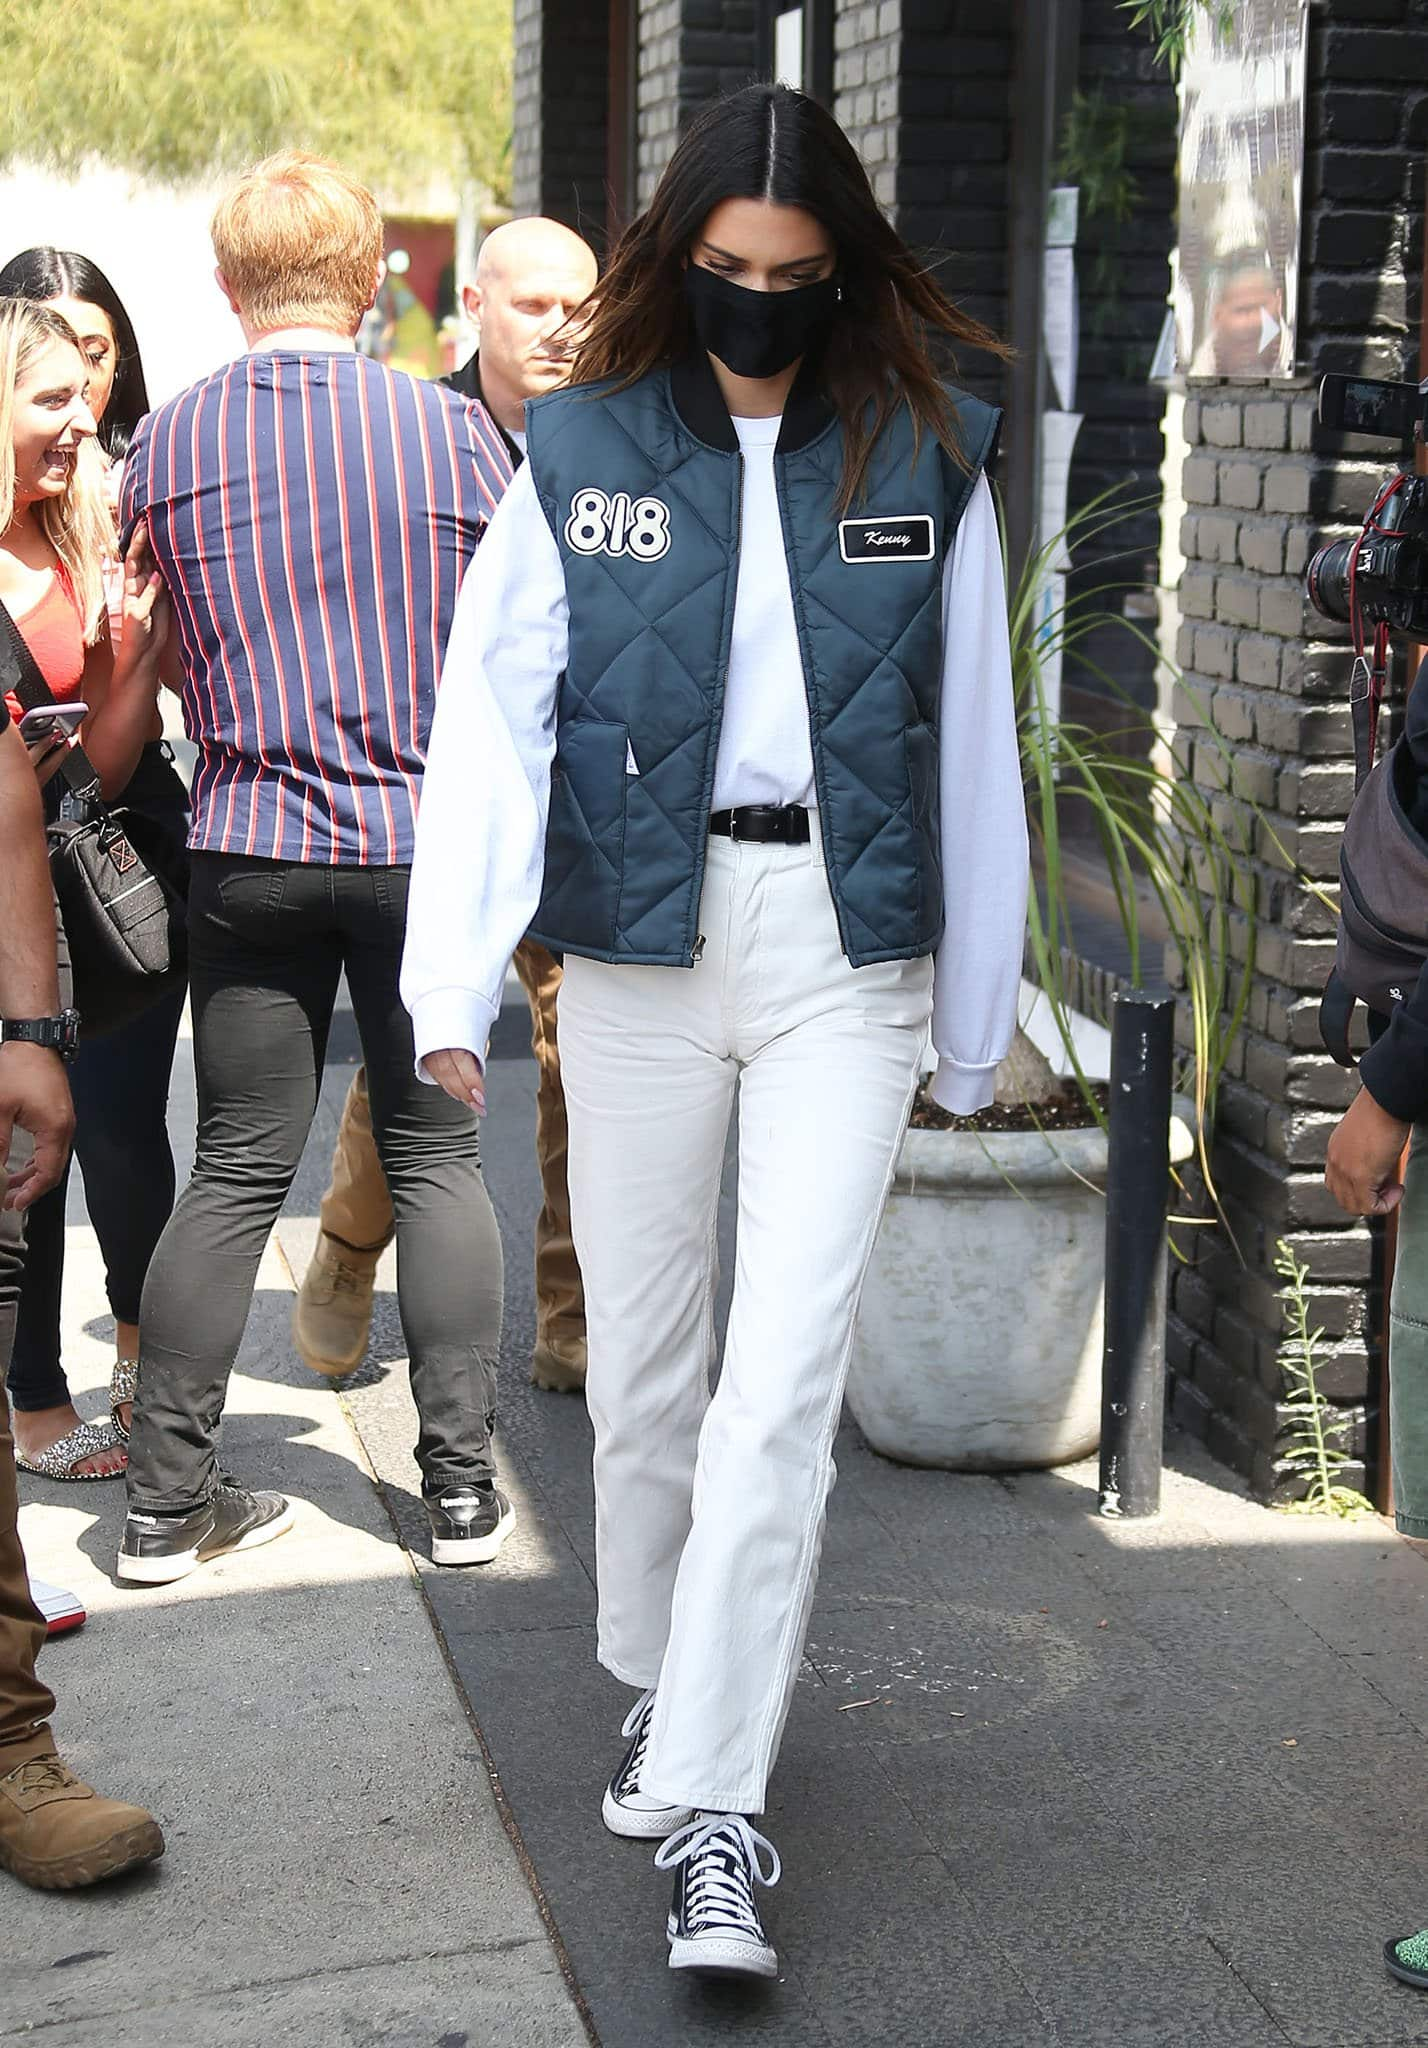 Kendall Jenner goes for a delivery driver look in 818-tagged vest with a white sweater and a pair of Style Addict pants